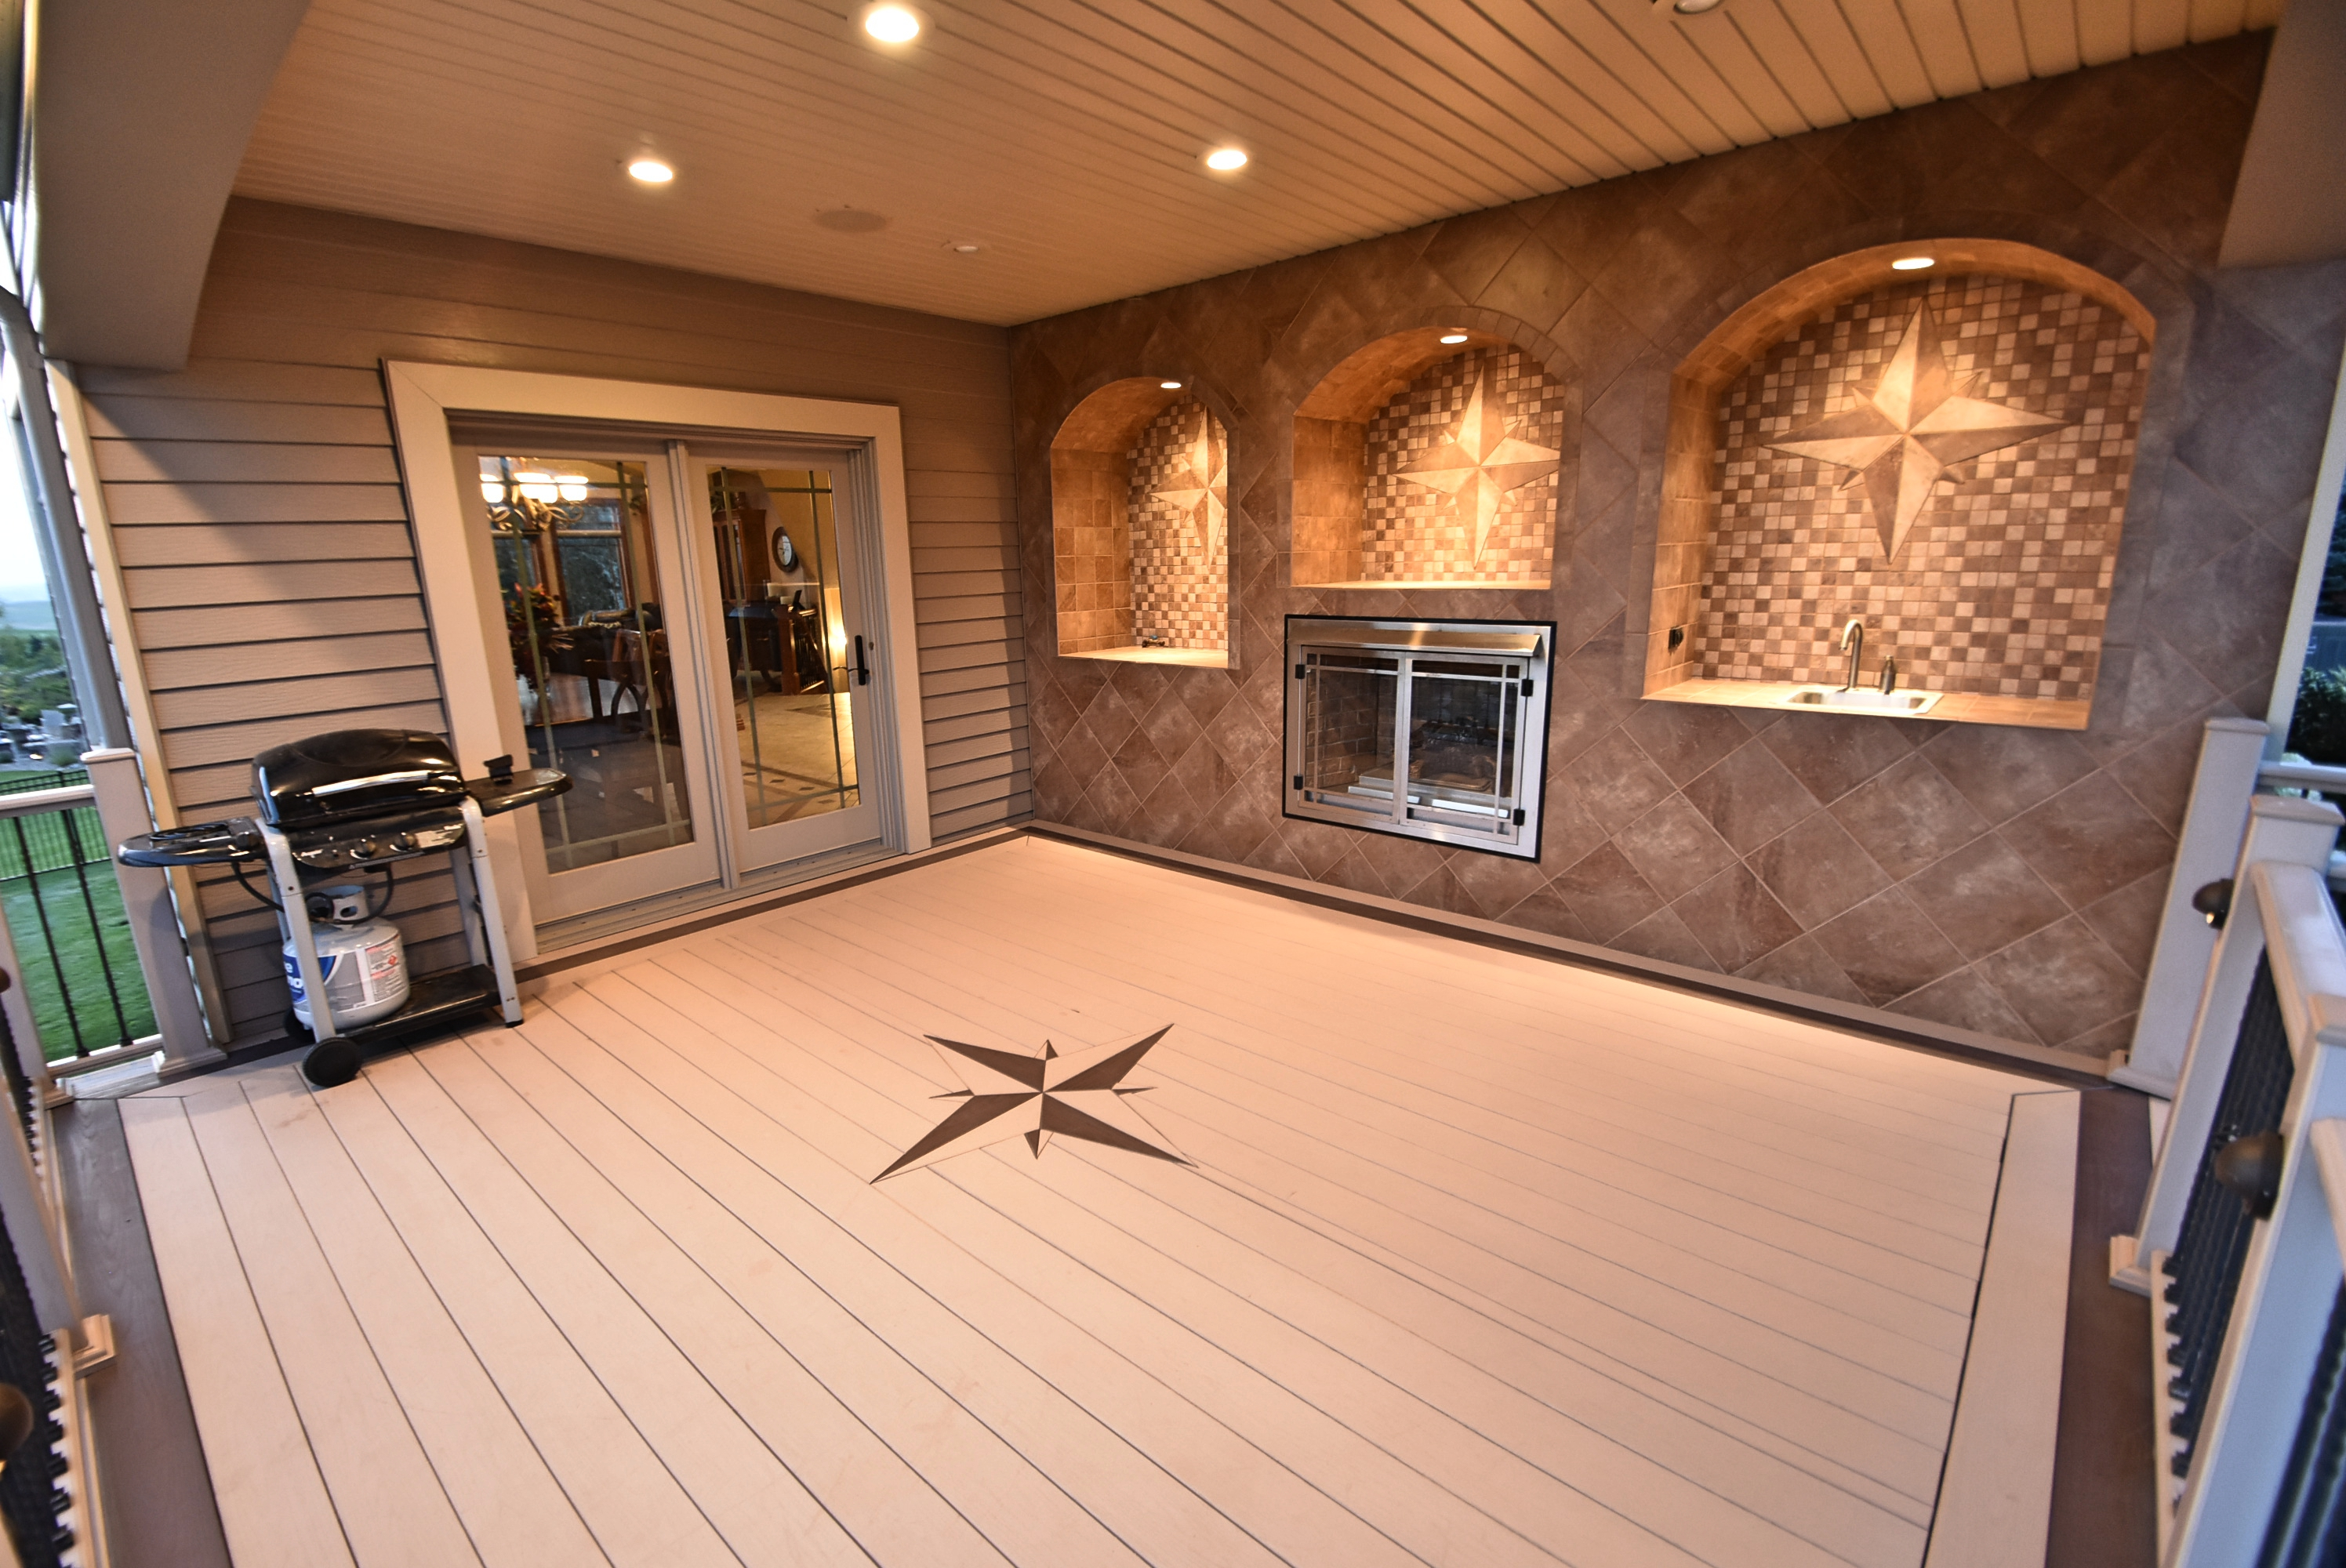 Covered deck with integrated fireplace, sink and grille area.